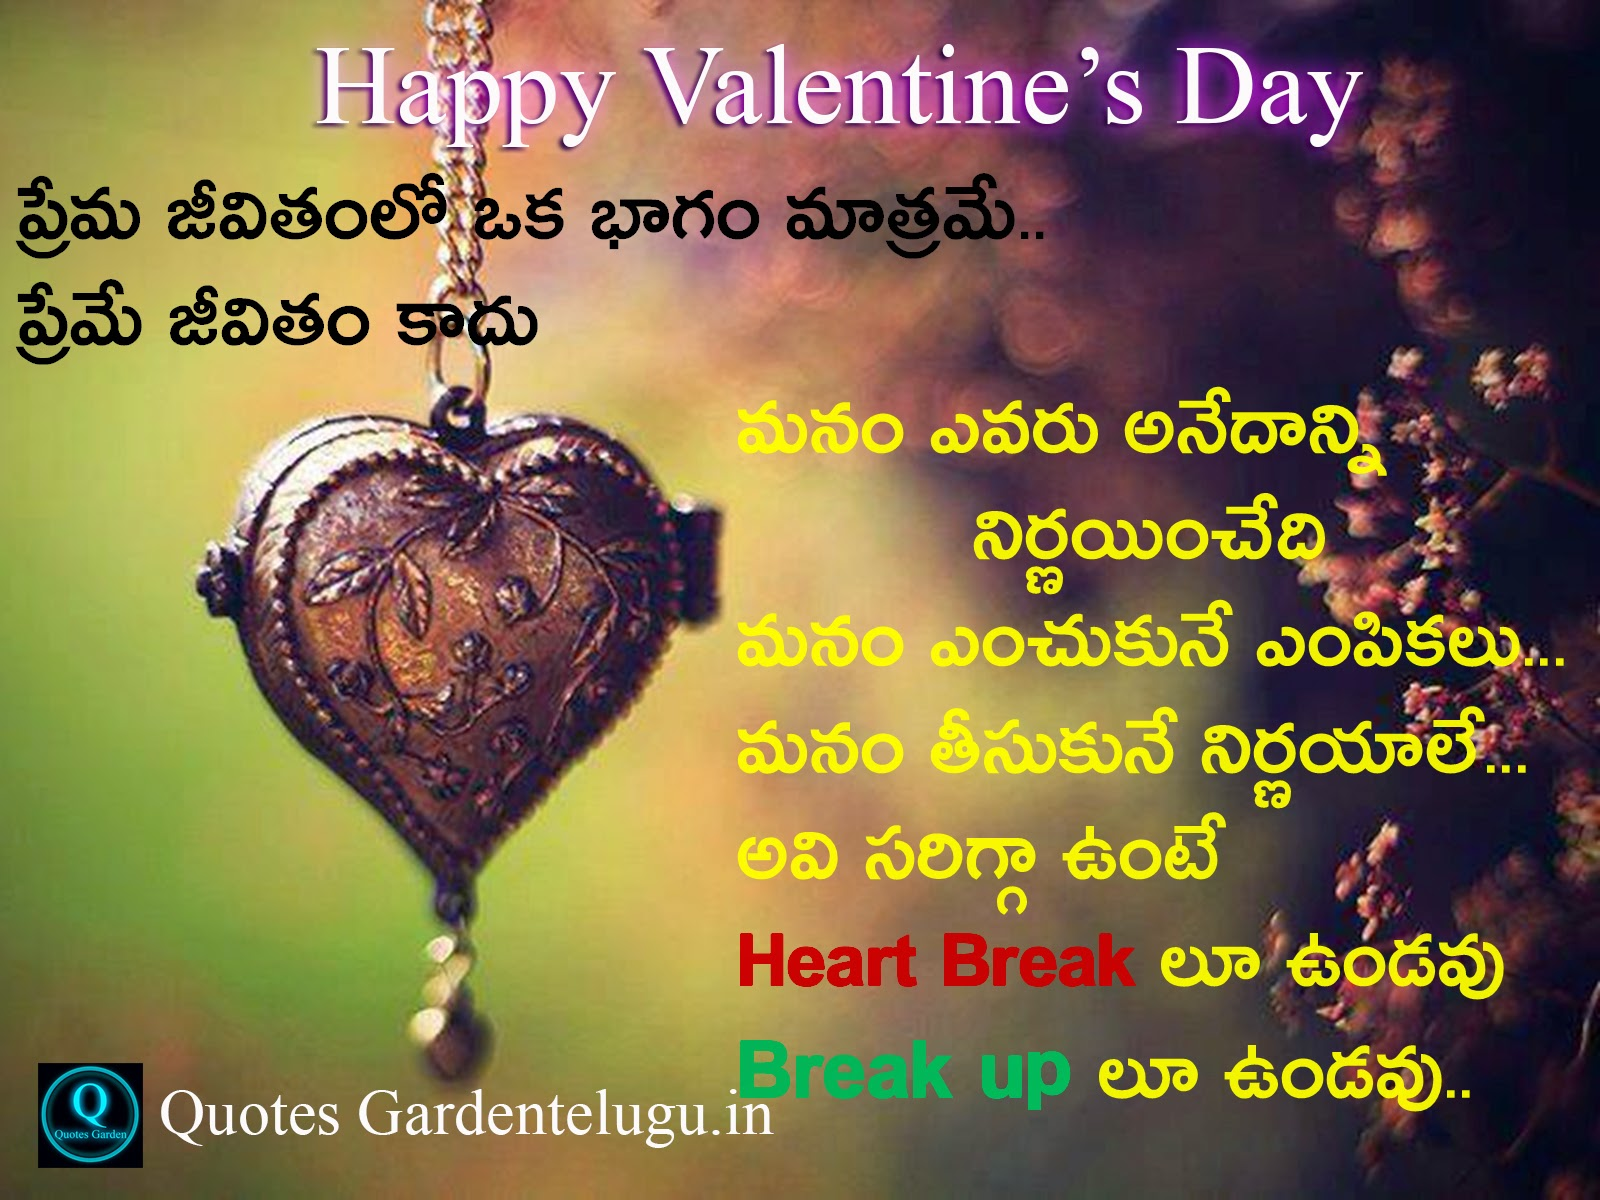 Vivekananda Telugu Quotes Wallpapers Valentine S Day Special Love Quotes Images Photoes